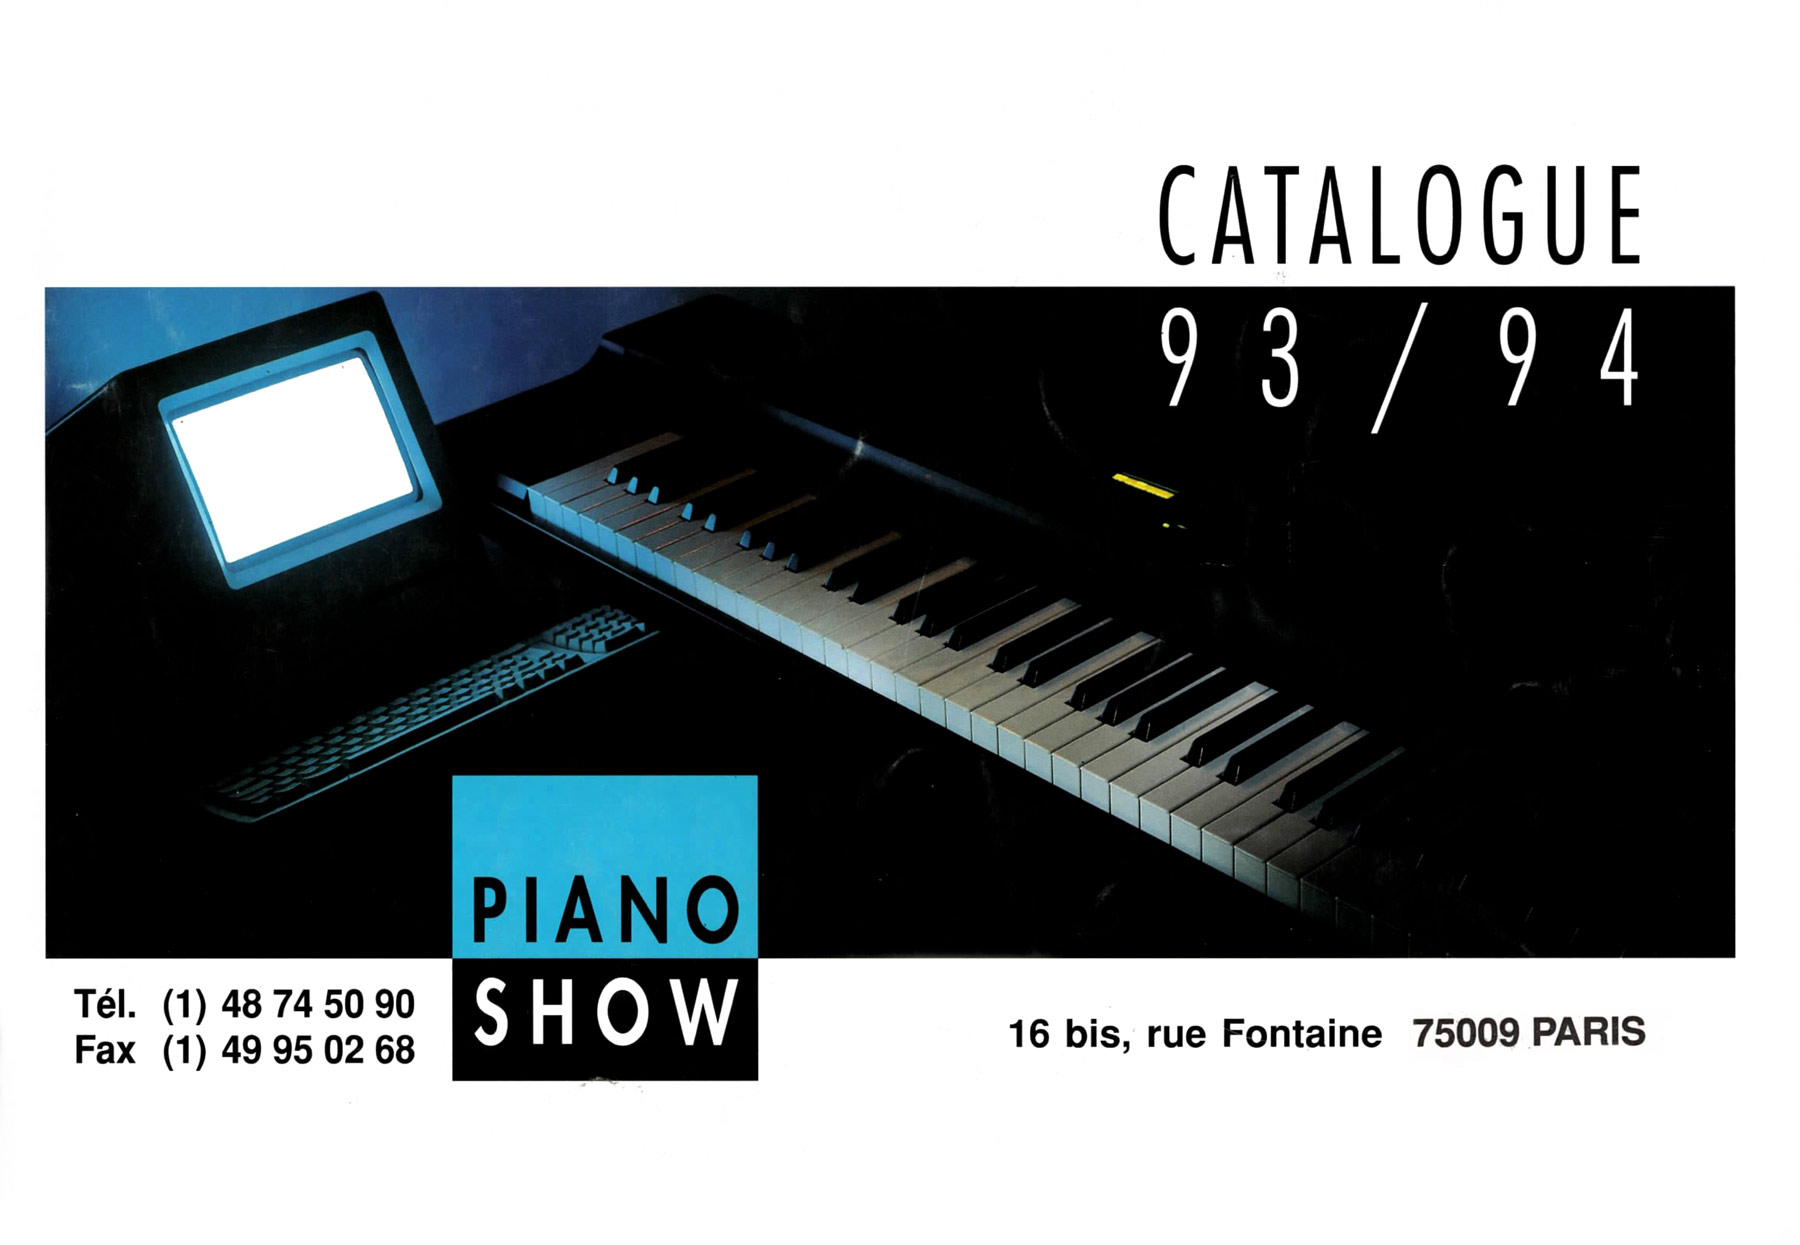 Catalogue Piano Show 1993 - 1994